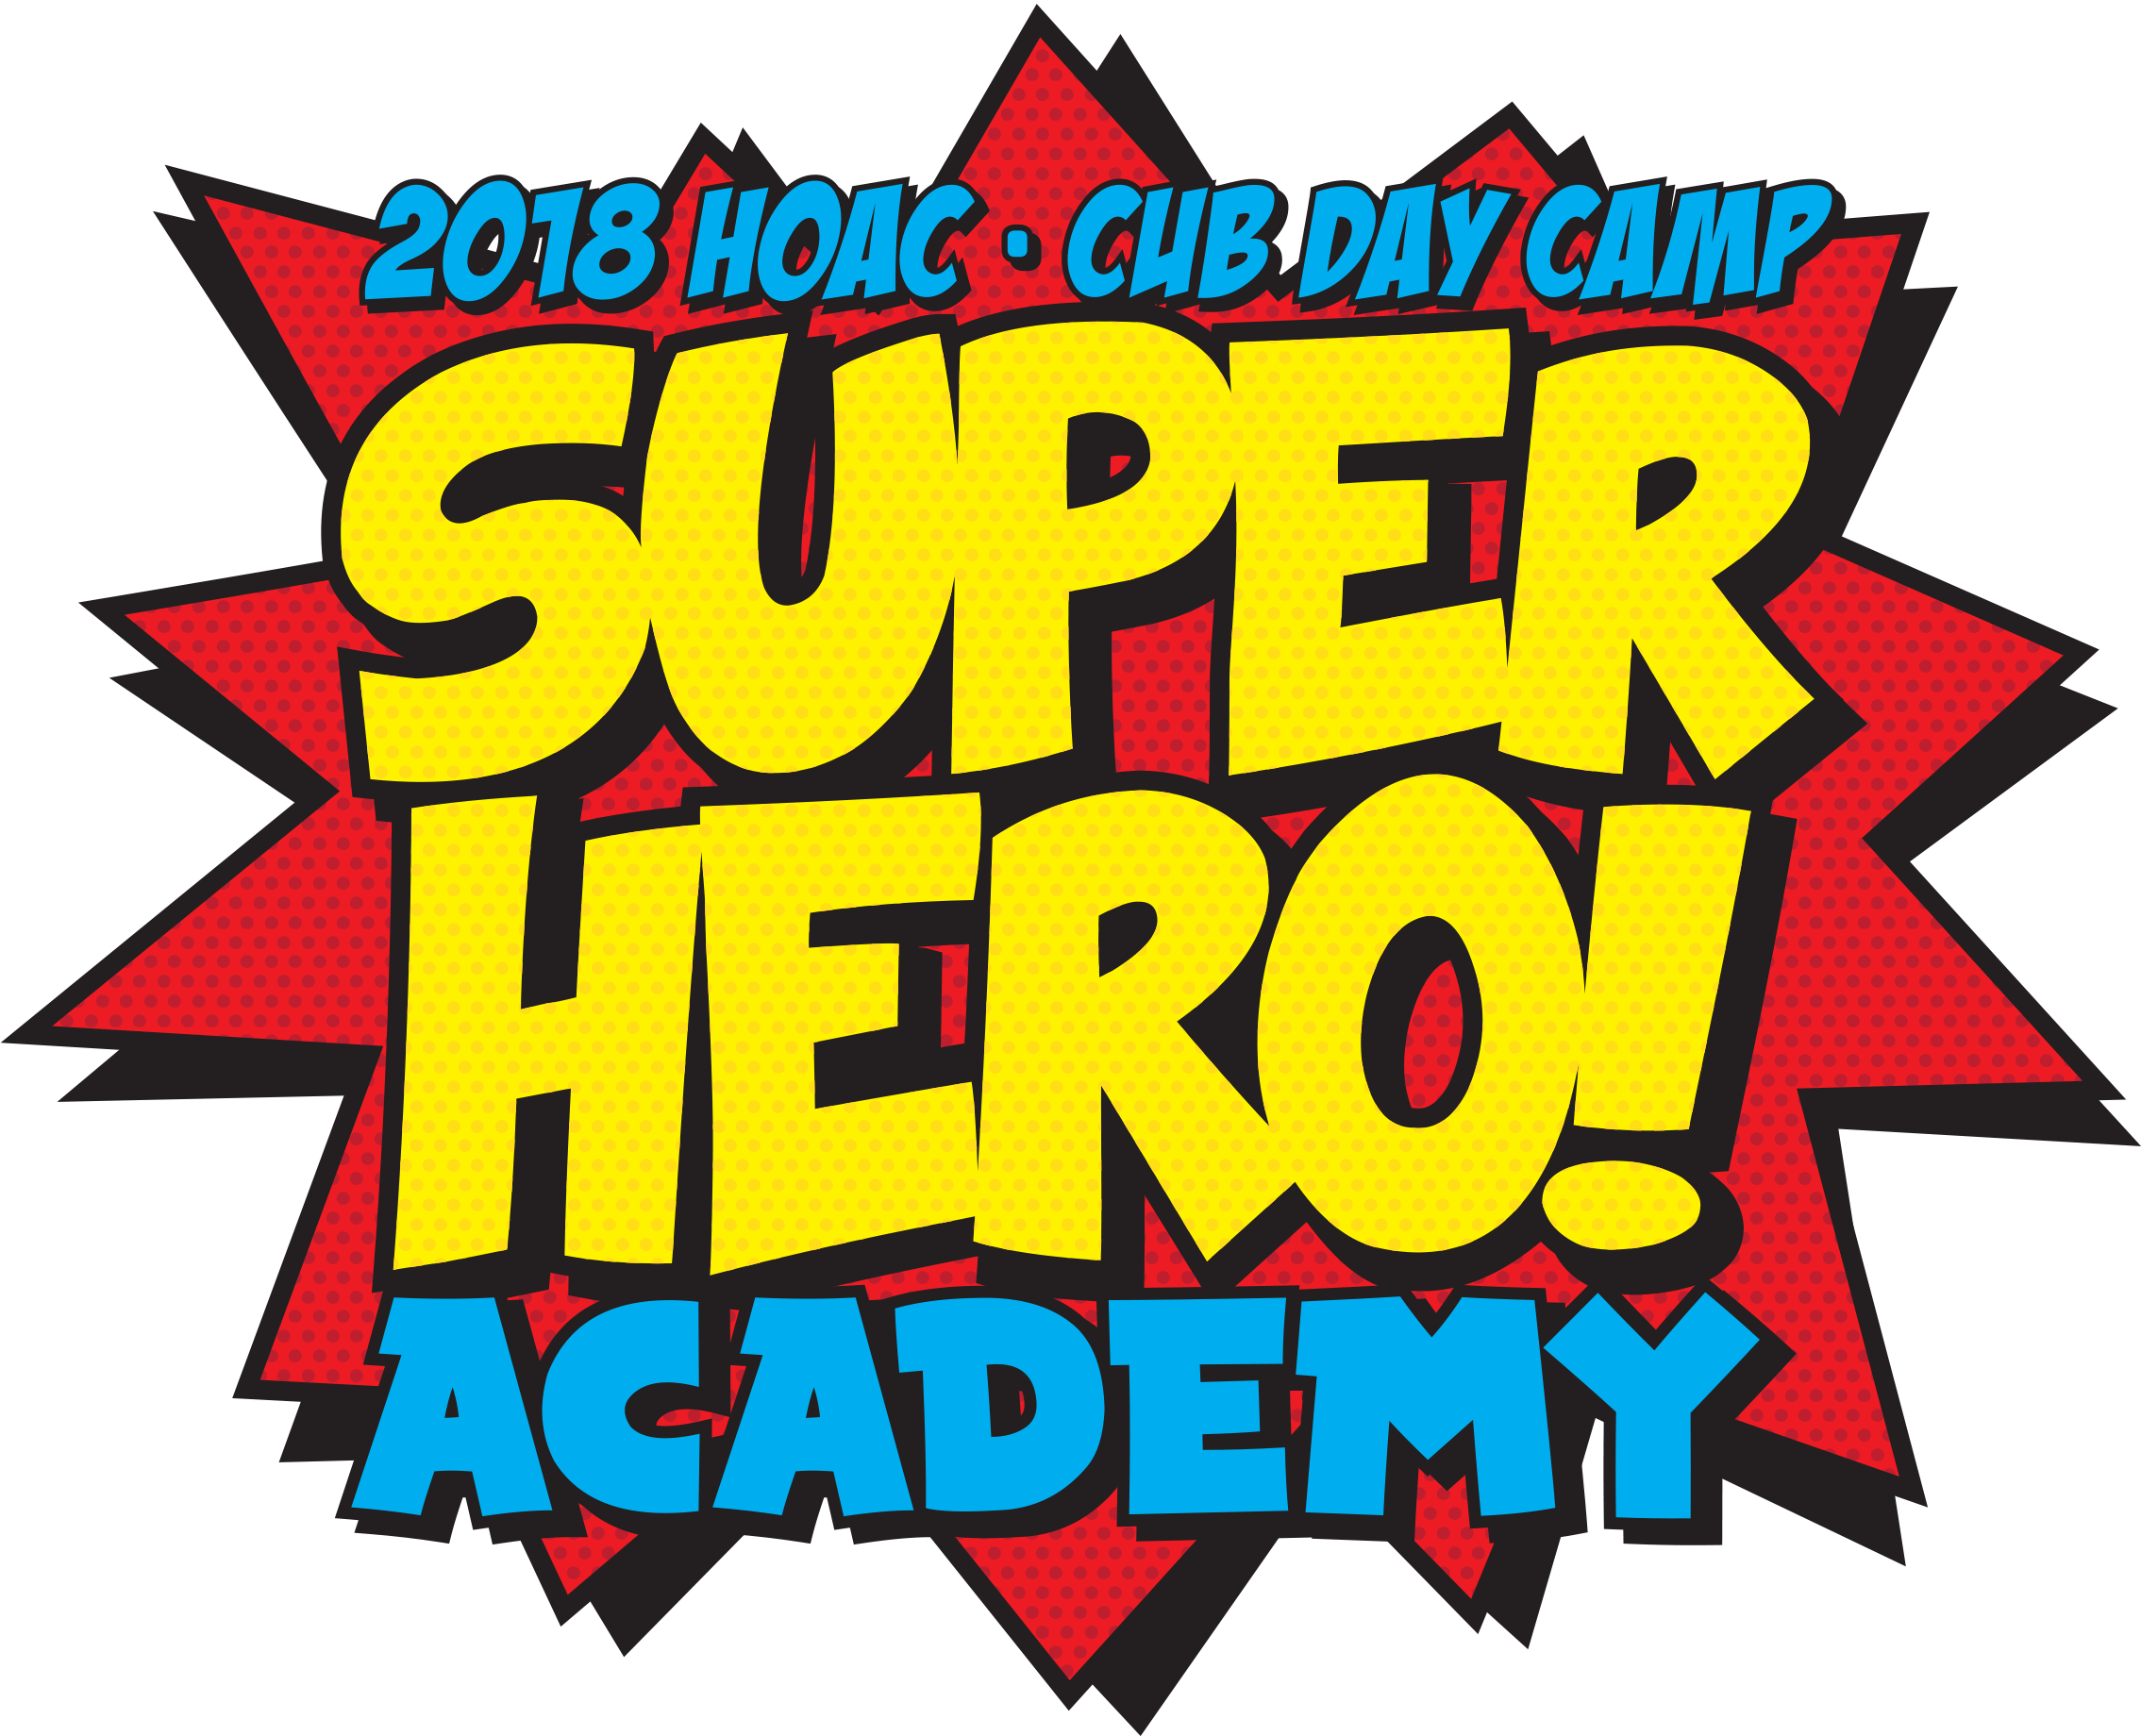 Day Camp is open to all Cub Scouts, including Kindergarten graduates, and  will offer an unforgettable outdoor experience with activities ranging from  PlusPng.com  - Cub Scout Camping PNG